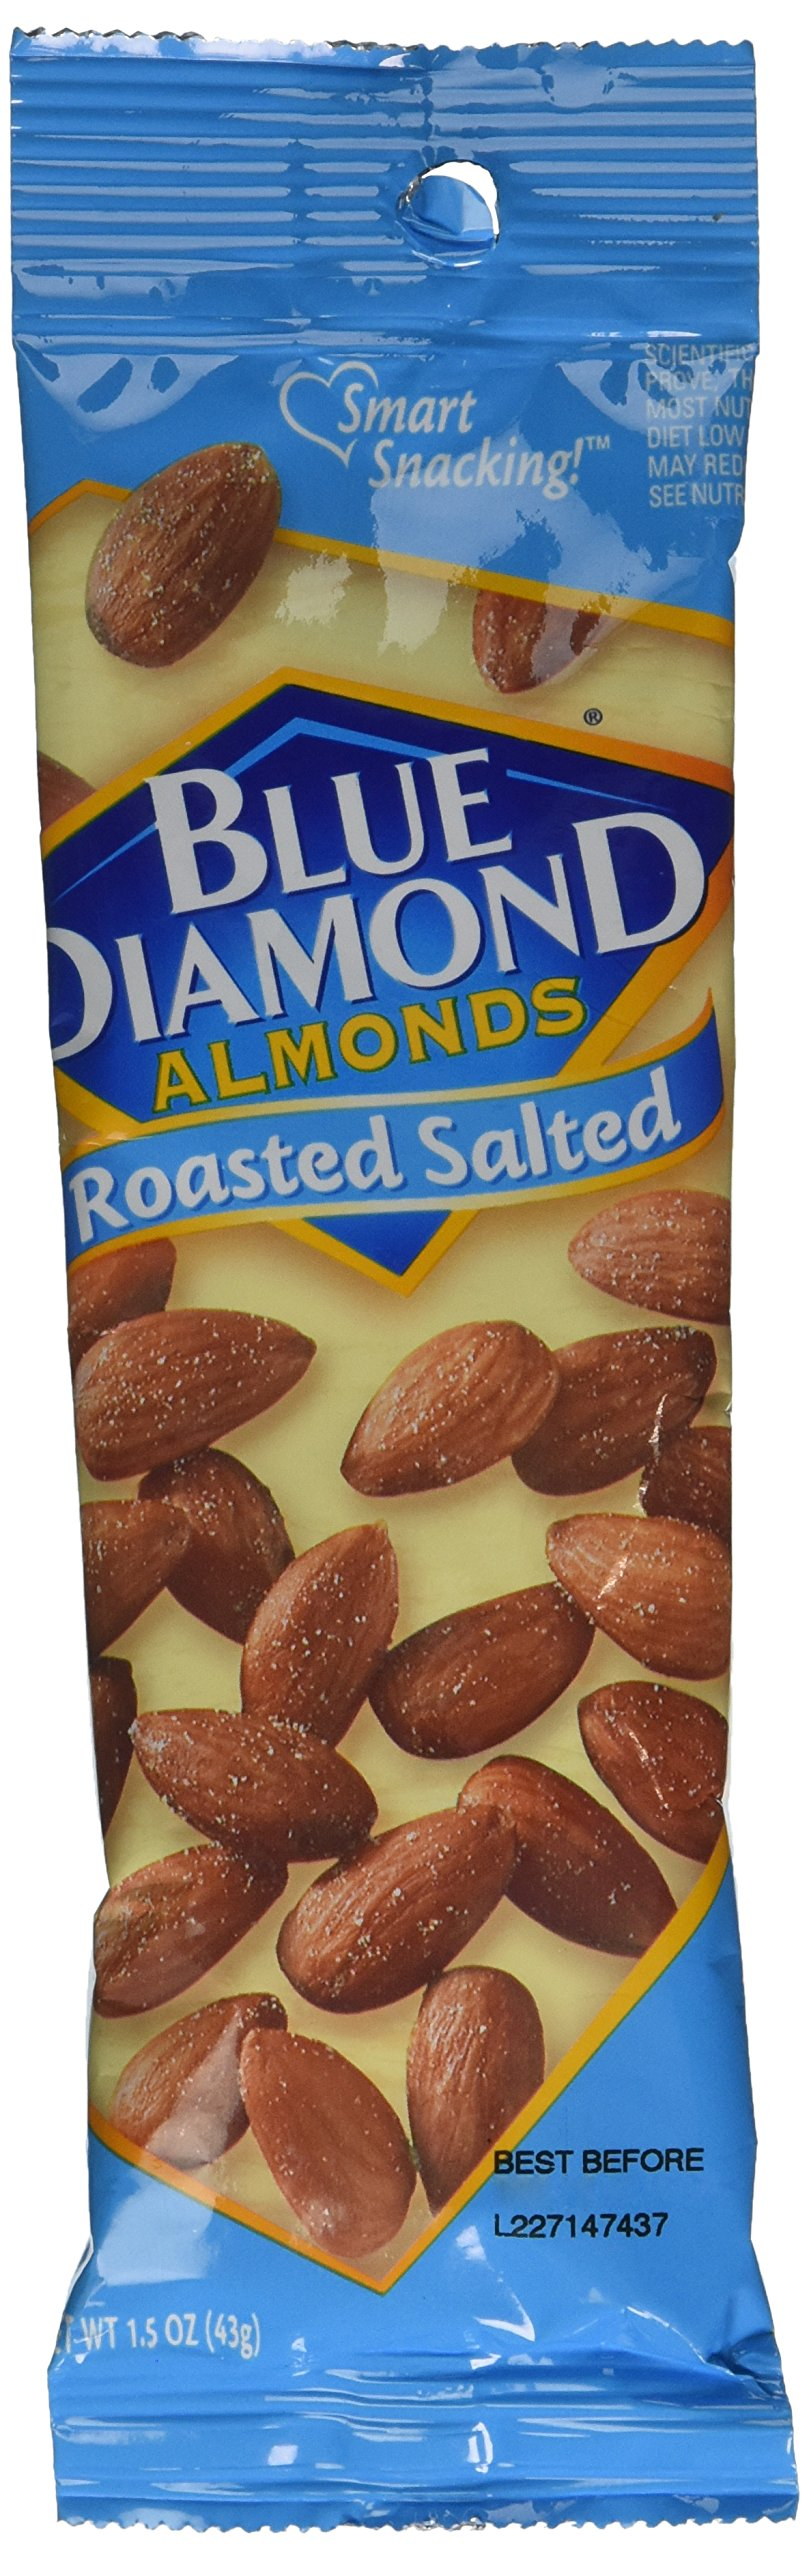 Blue Diamond Almonds, Roasted Salted, 1.5 Ounce (Pack of 12) by Blue Diamond Almonds (Image #2)